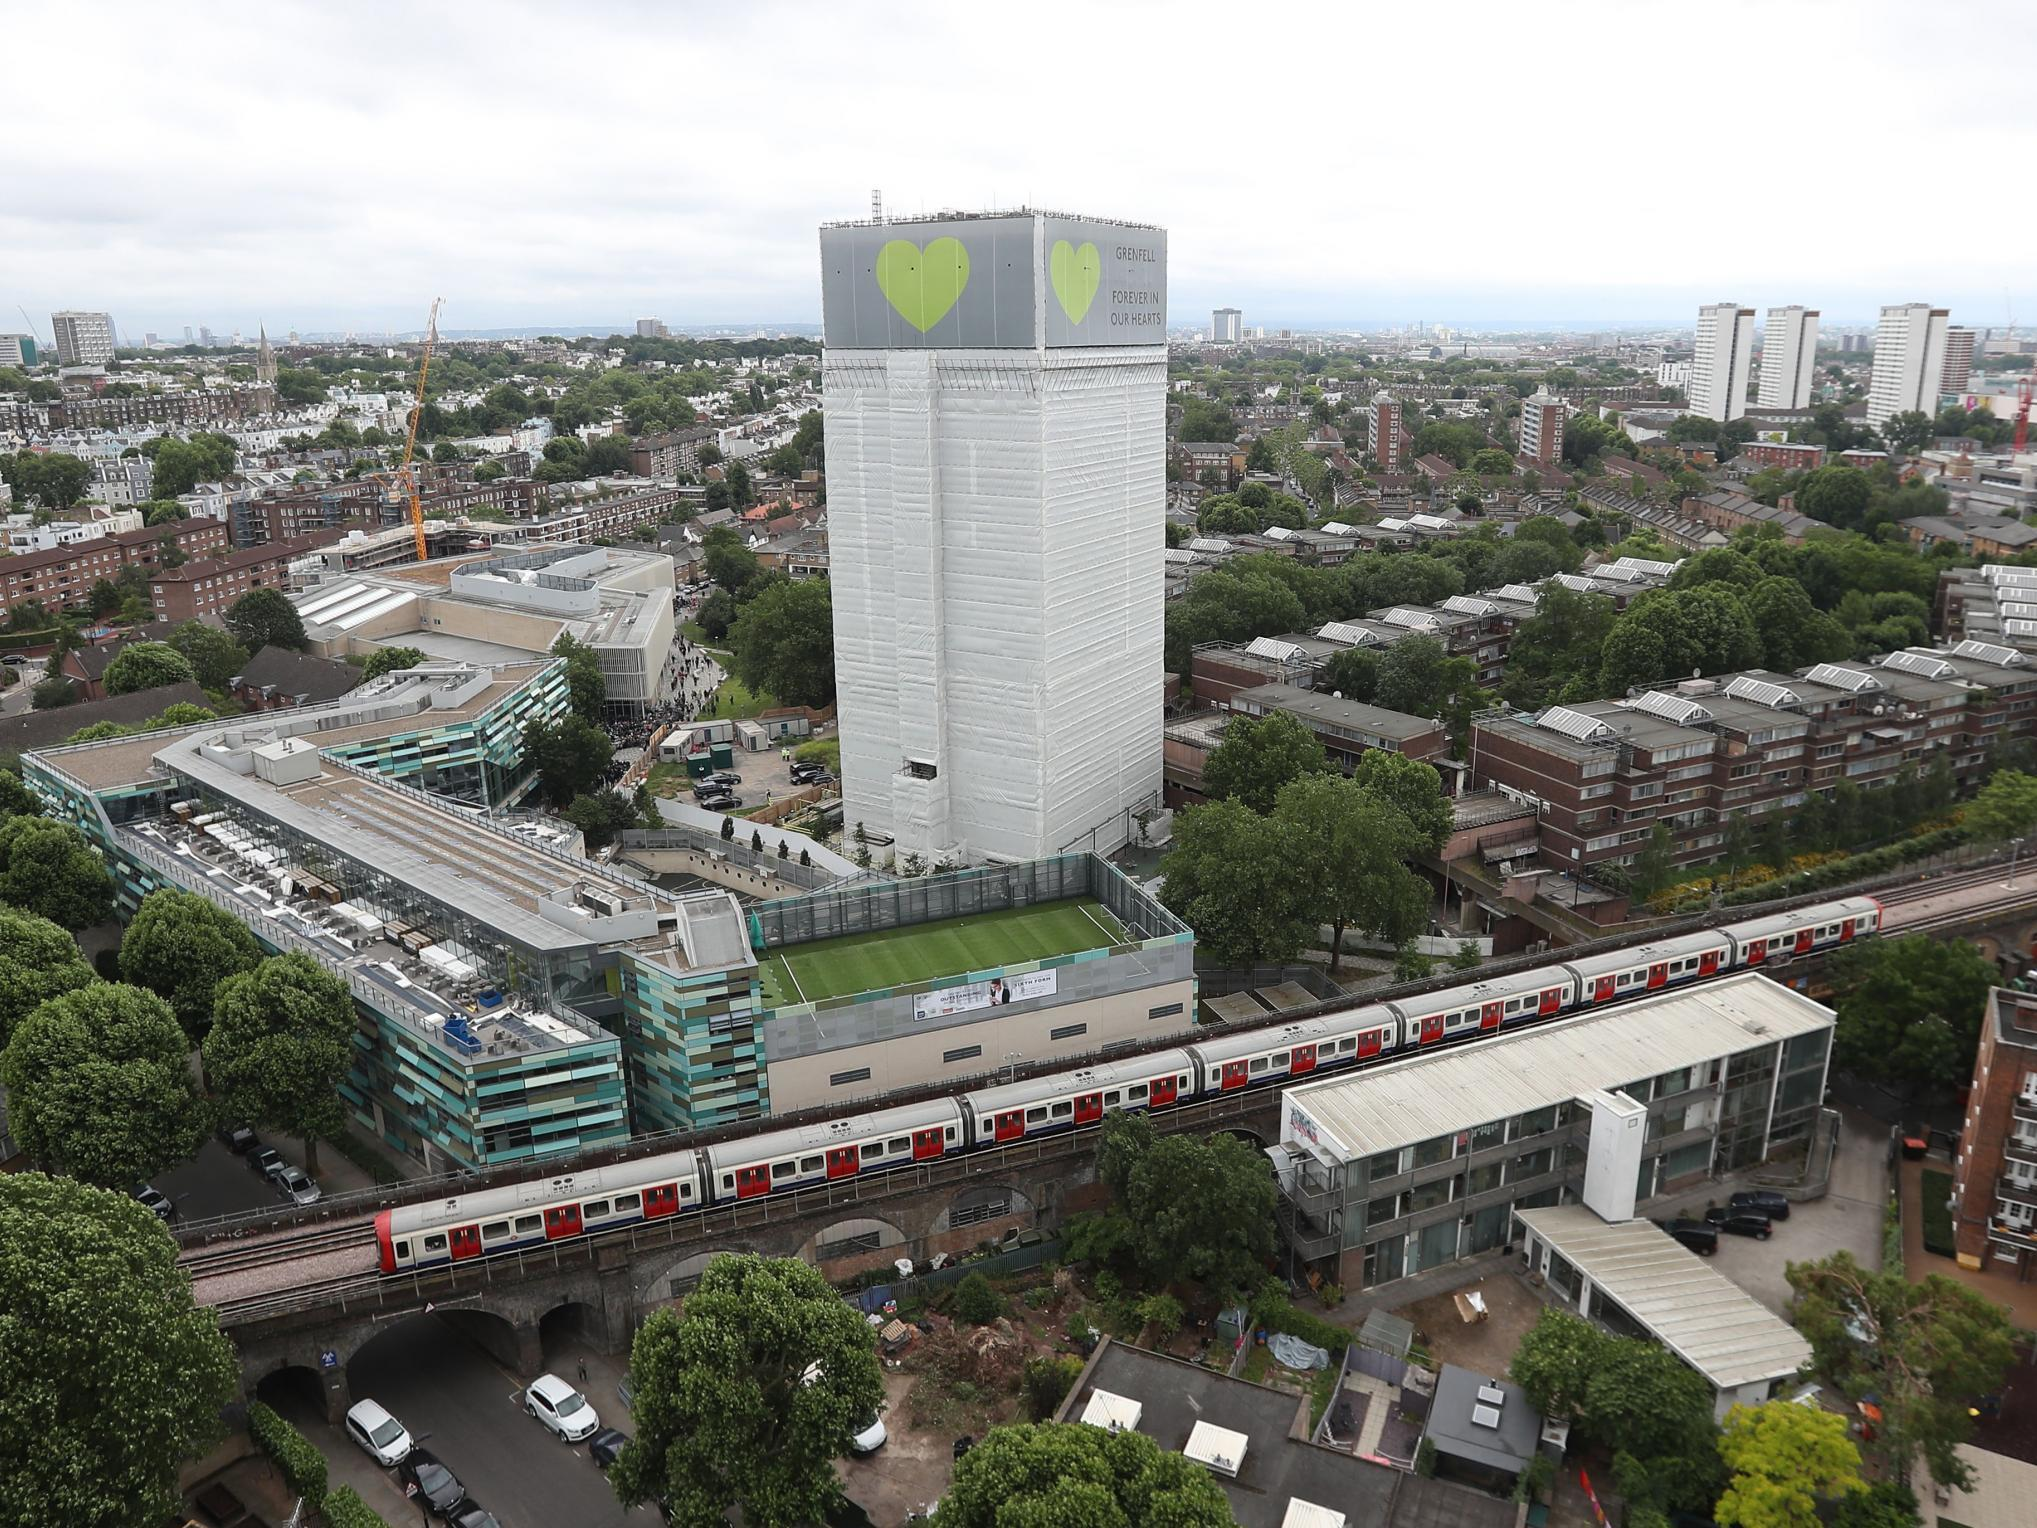 Government refuses to meet full police funding request for Grenfell probe